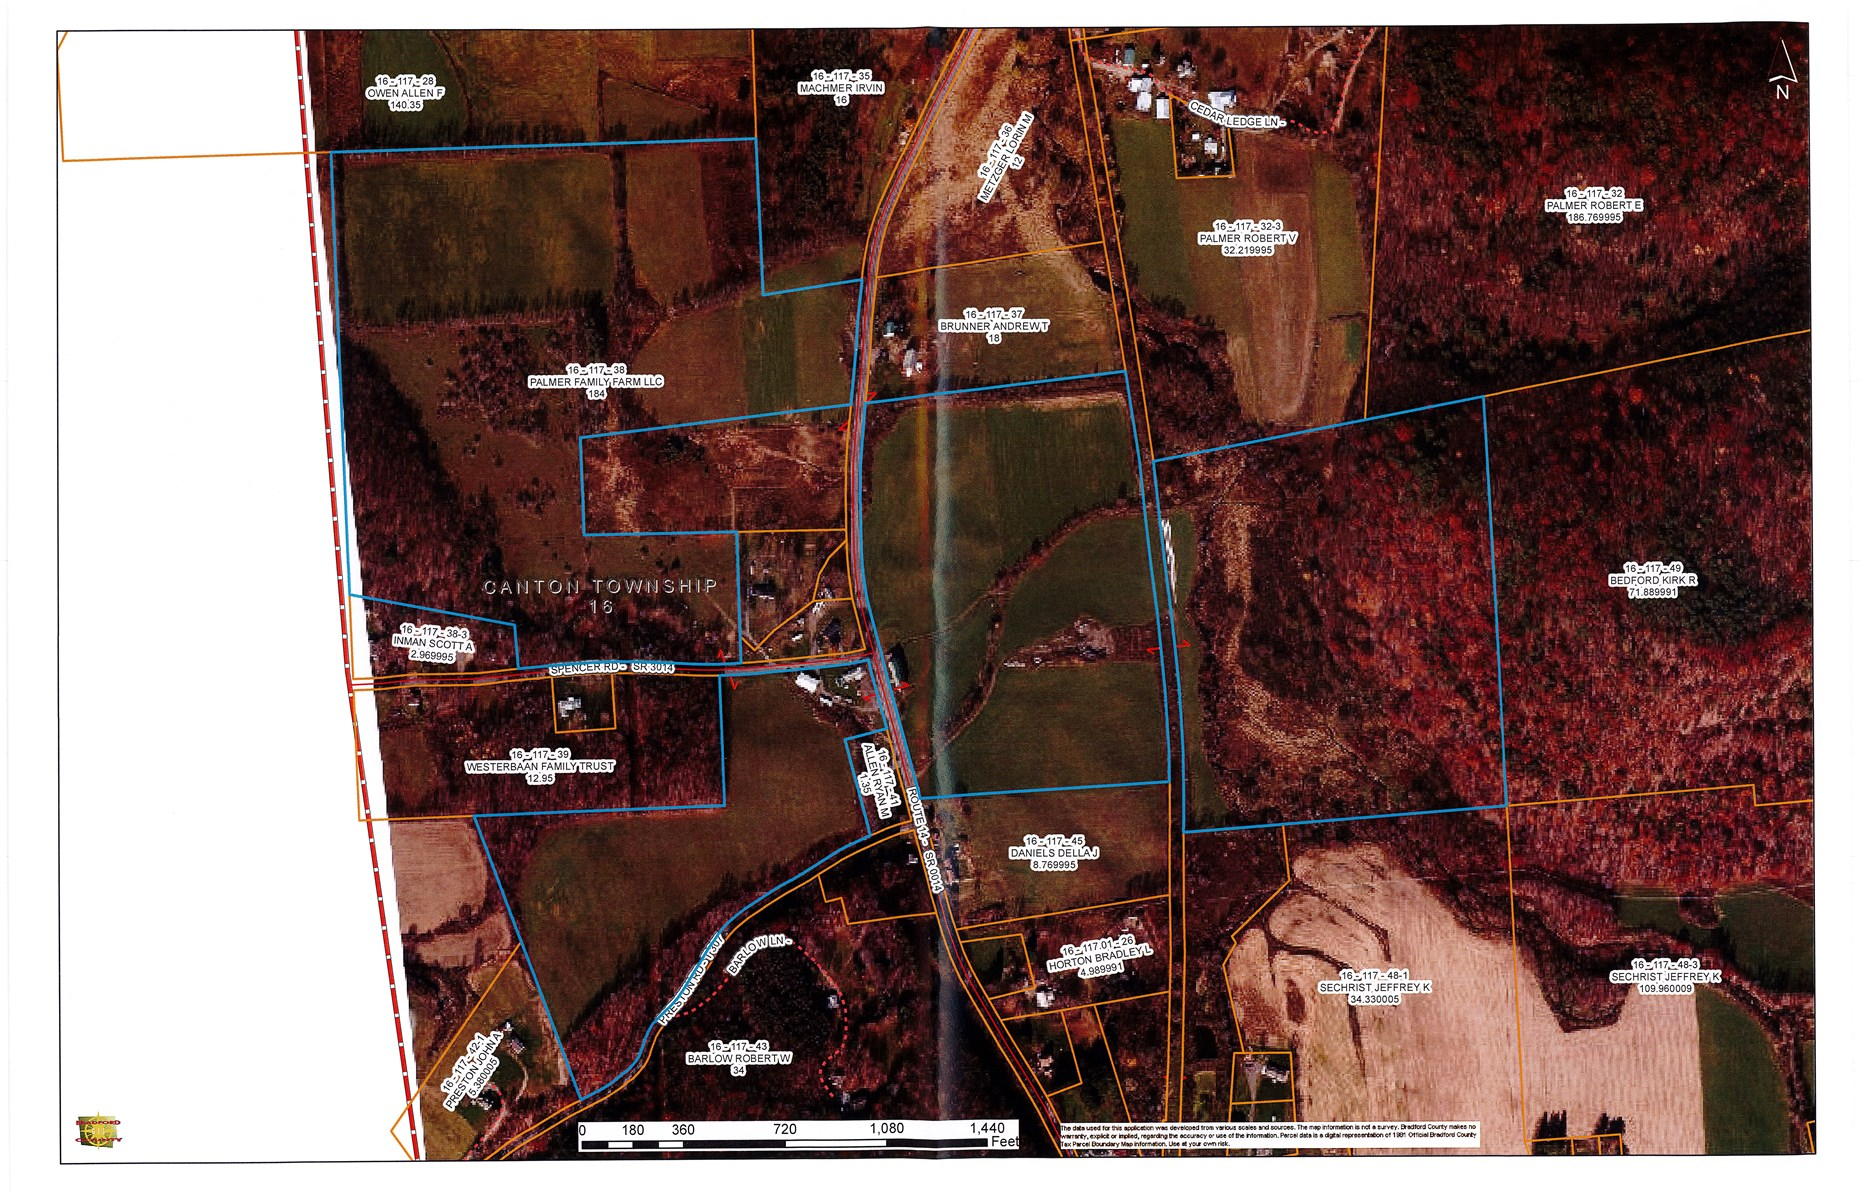 LAND FOR SALE BRADFORD COUNTY, PA - OGM RIGHTS CONVEY